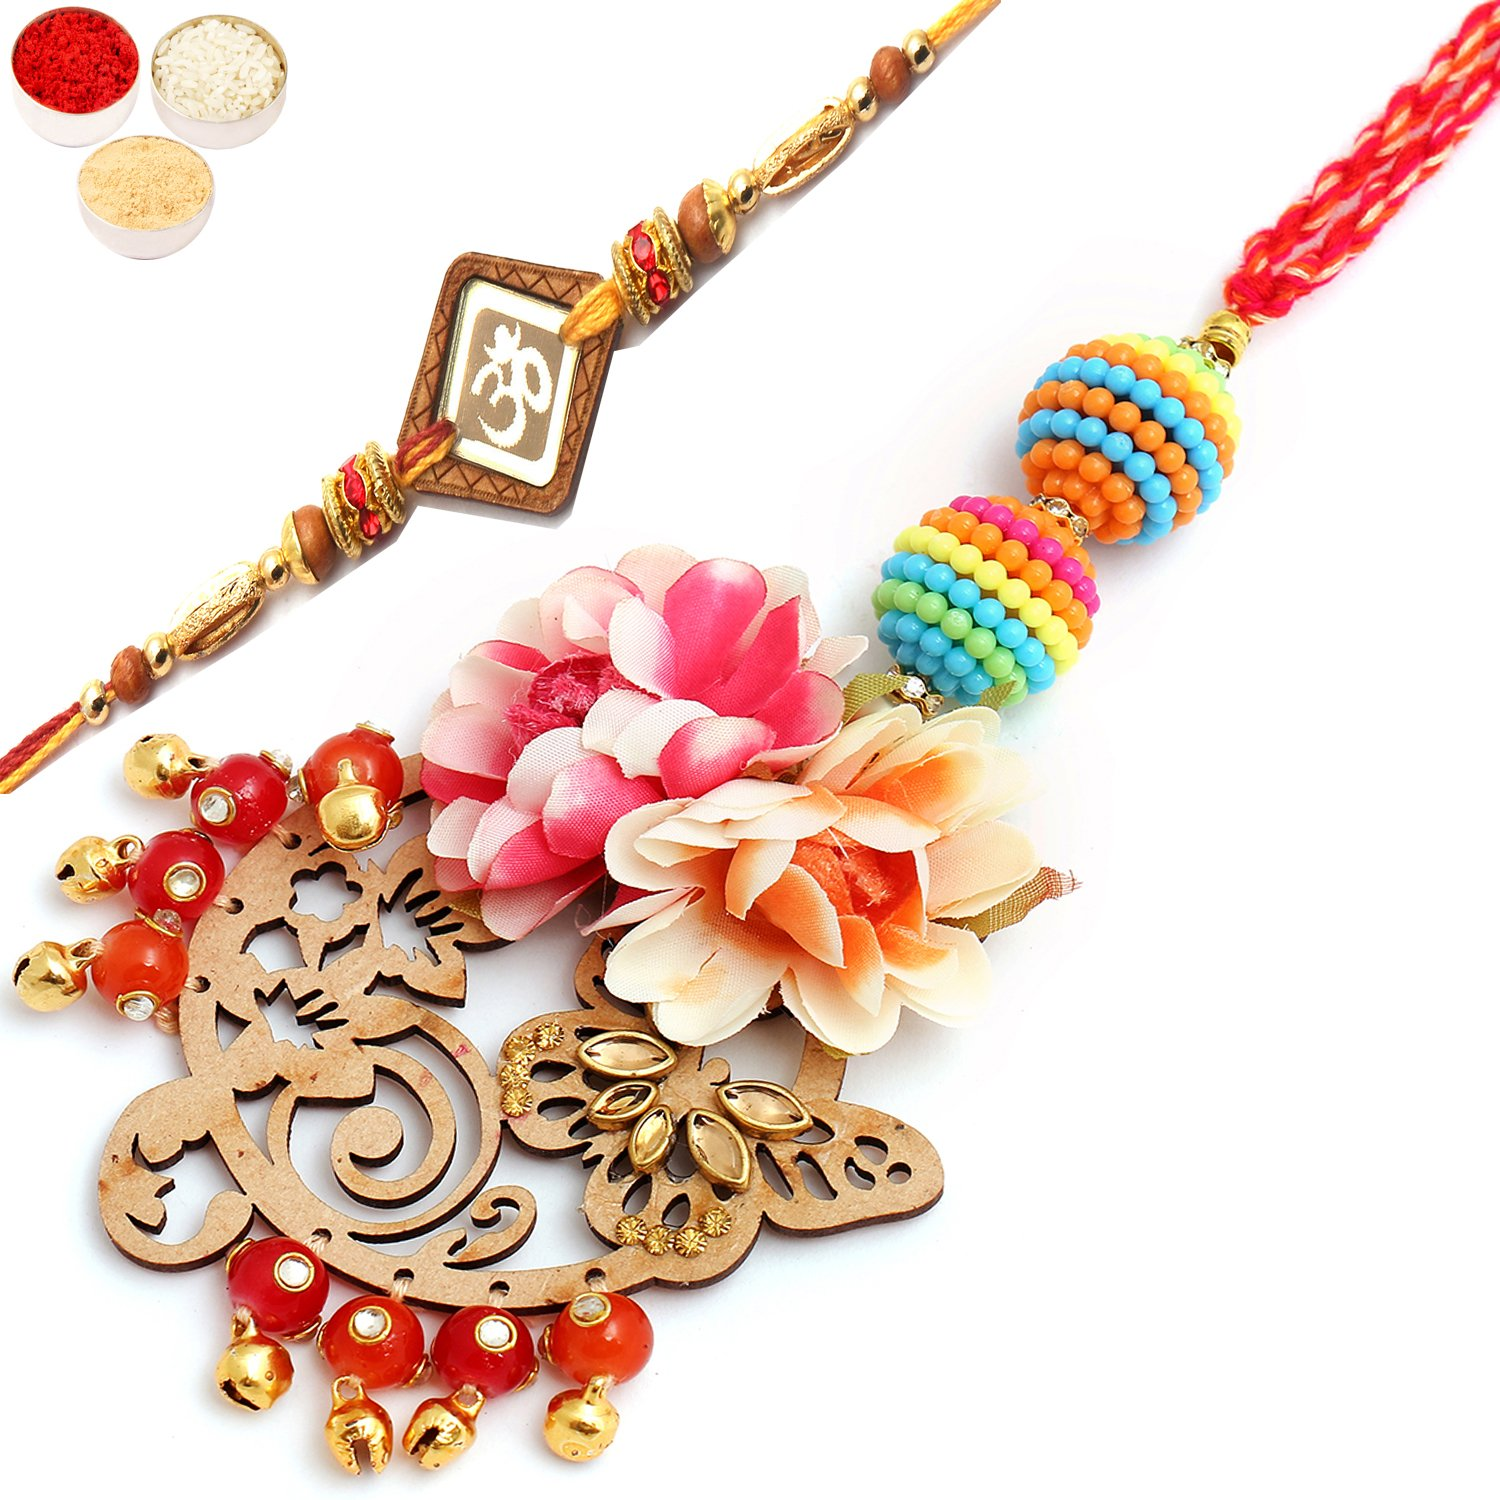 Showers of Care pl7901 Bhaiya Bhabhi Rakhi